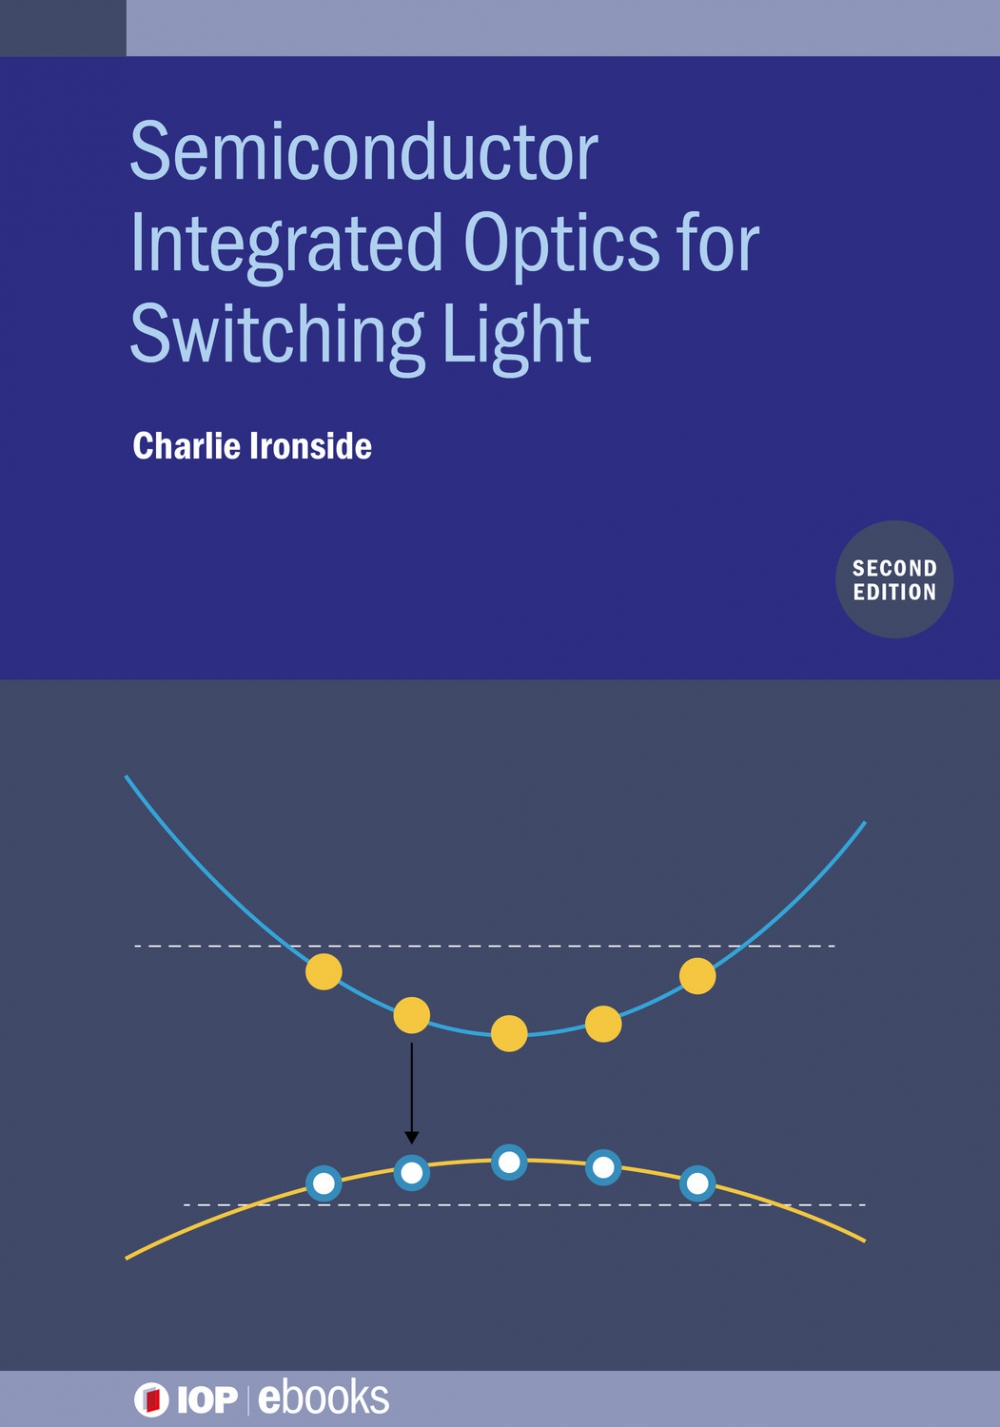 Jacket image for Semiconductor Integrated Optics for Switching Light (Second Edition)